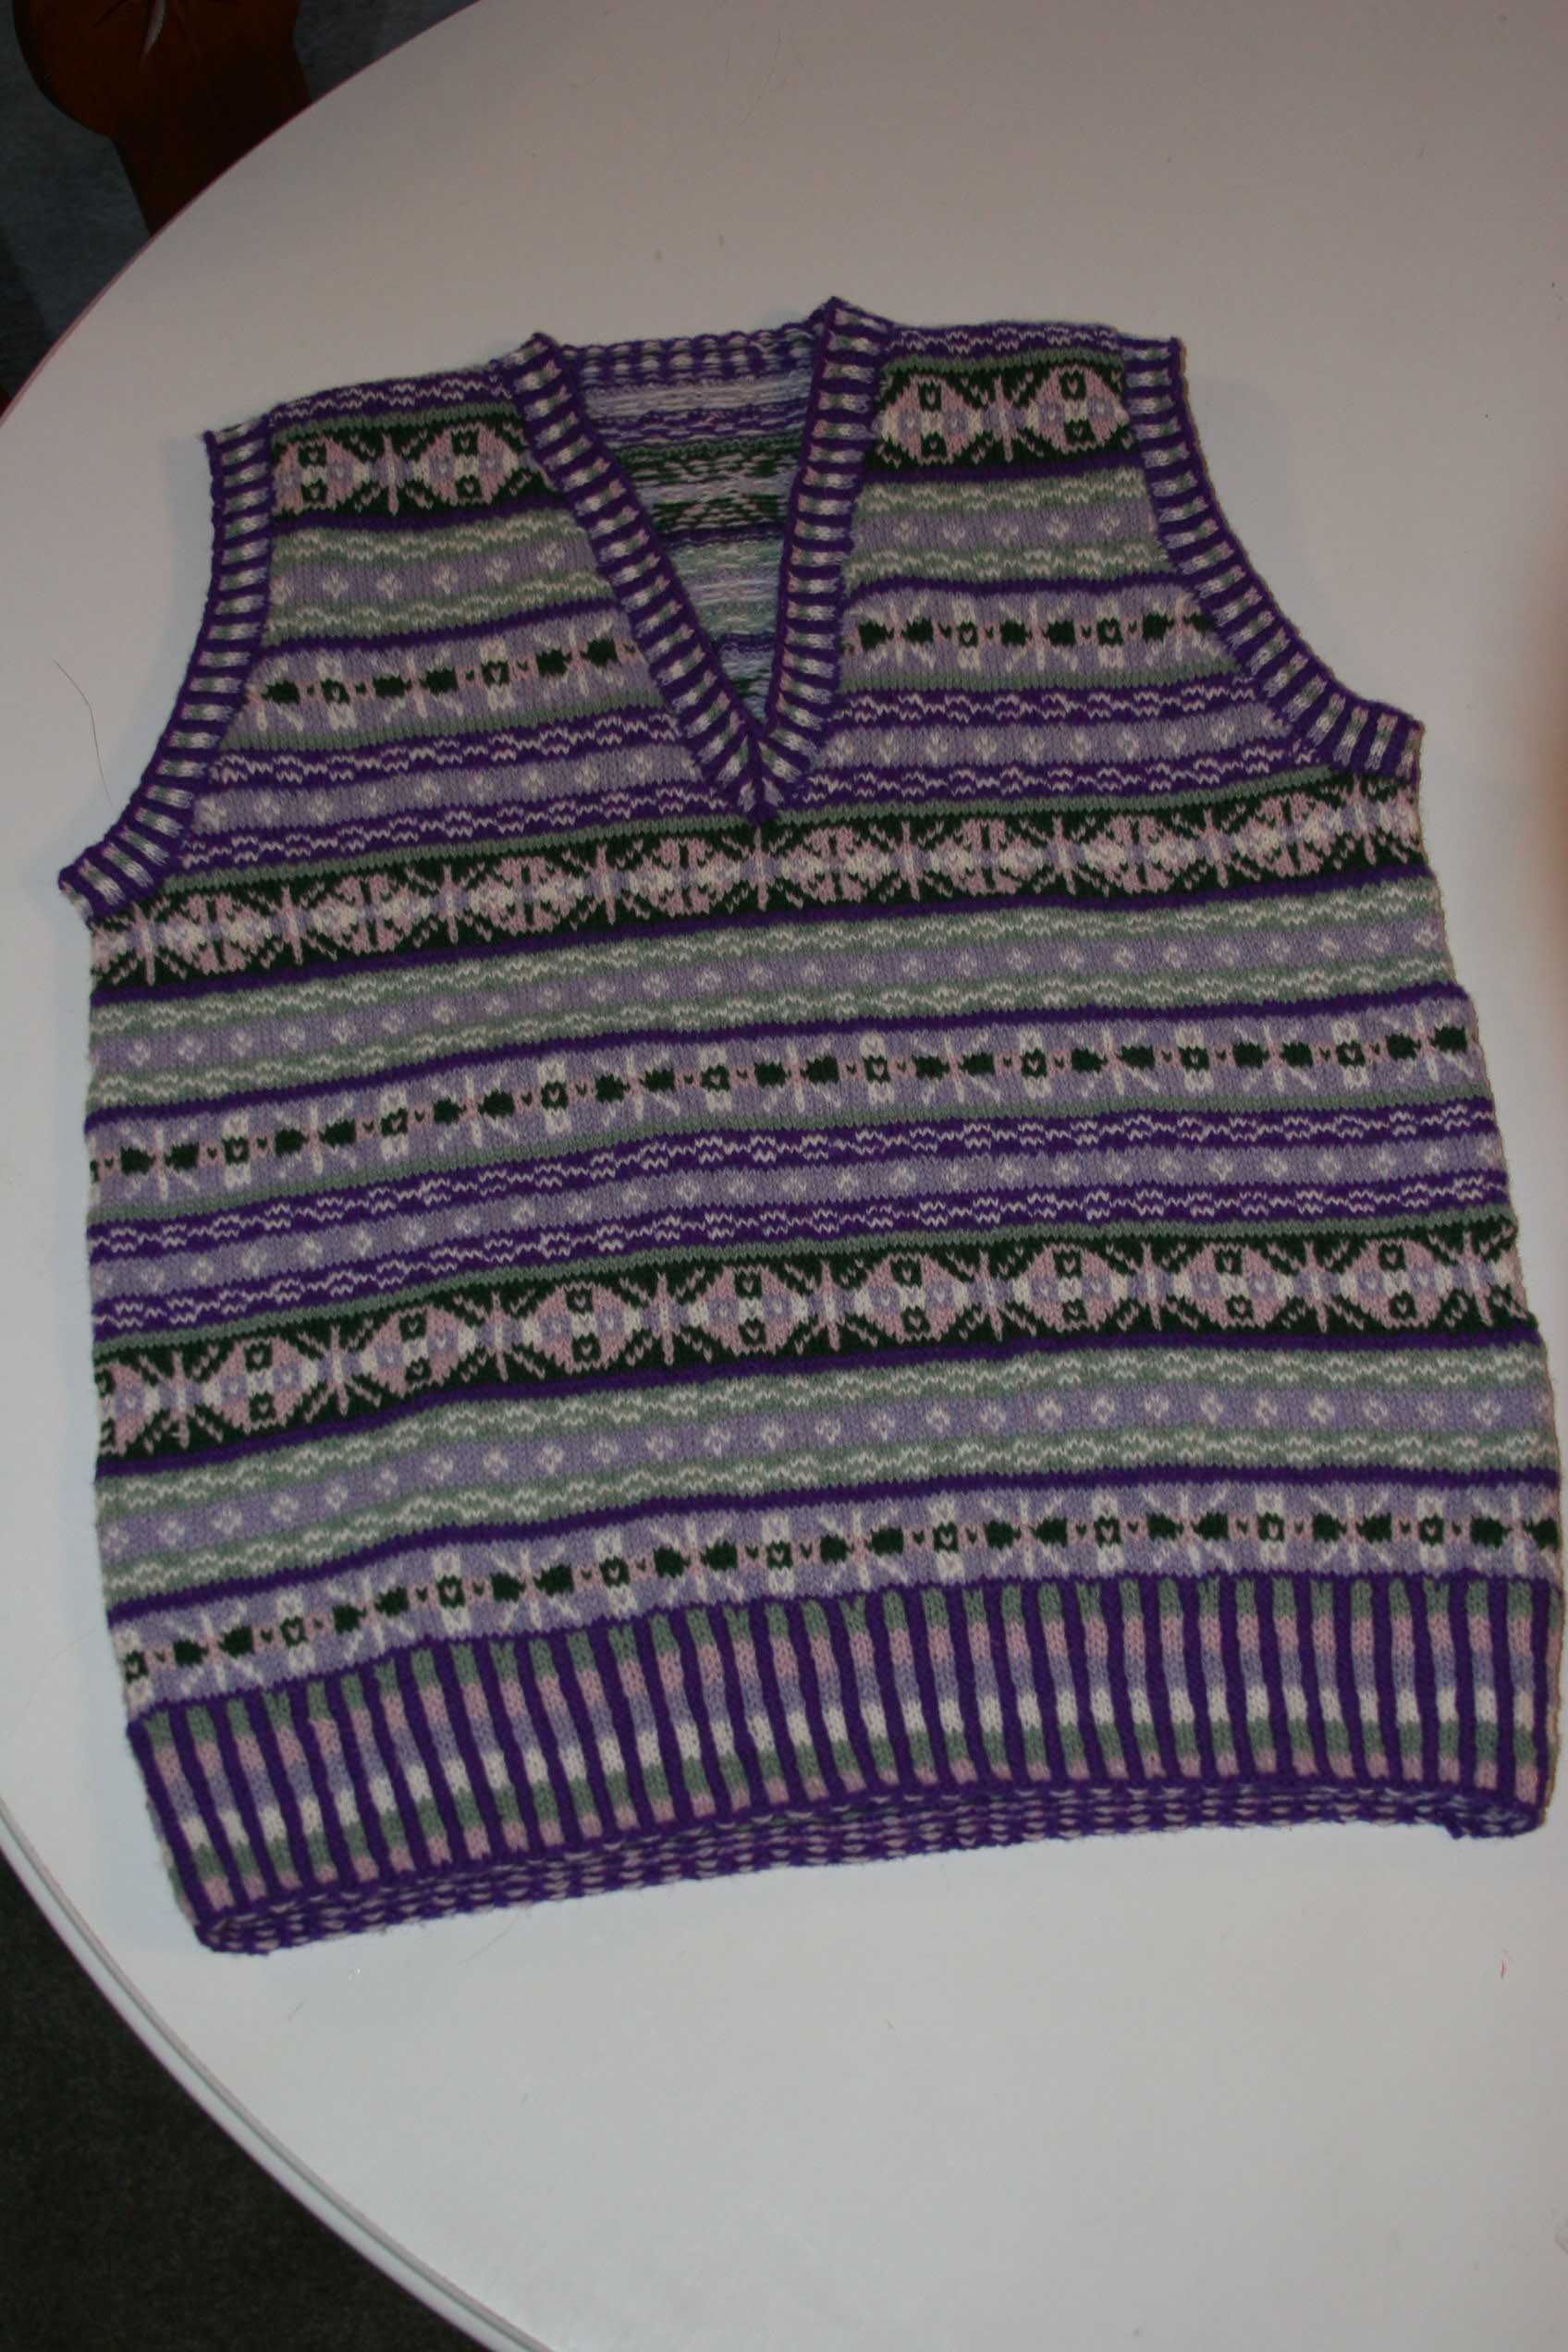 "Purple Fair Isle Vest – The Art of Fair Isle Knitting by Ann Feitelson – ""Hillhead Slipover"" knitted in Jamieson and Smith Shetland wool in blues, grays, and black."